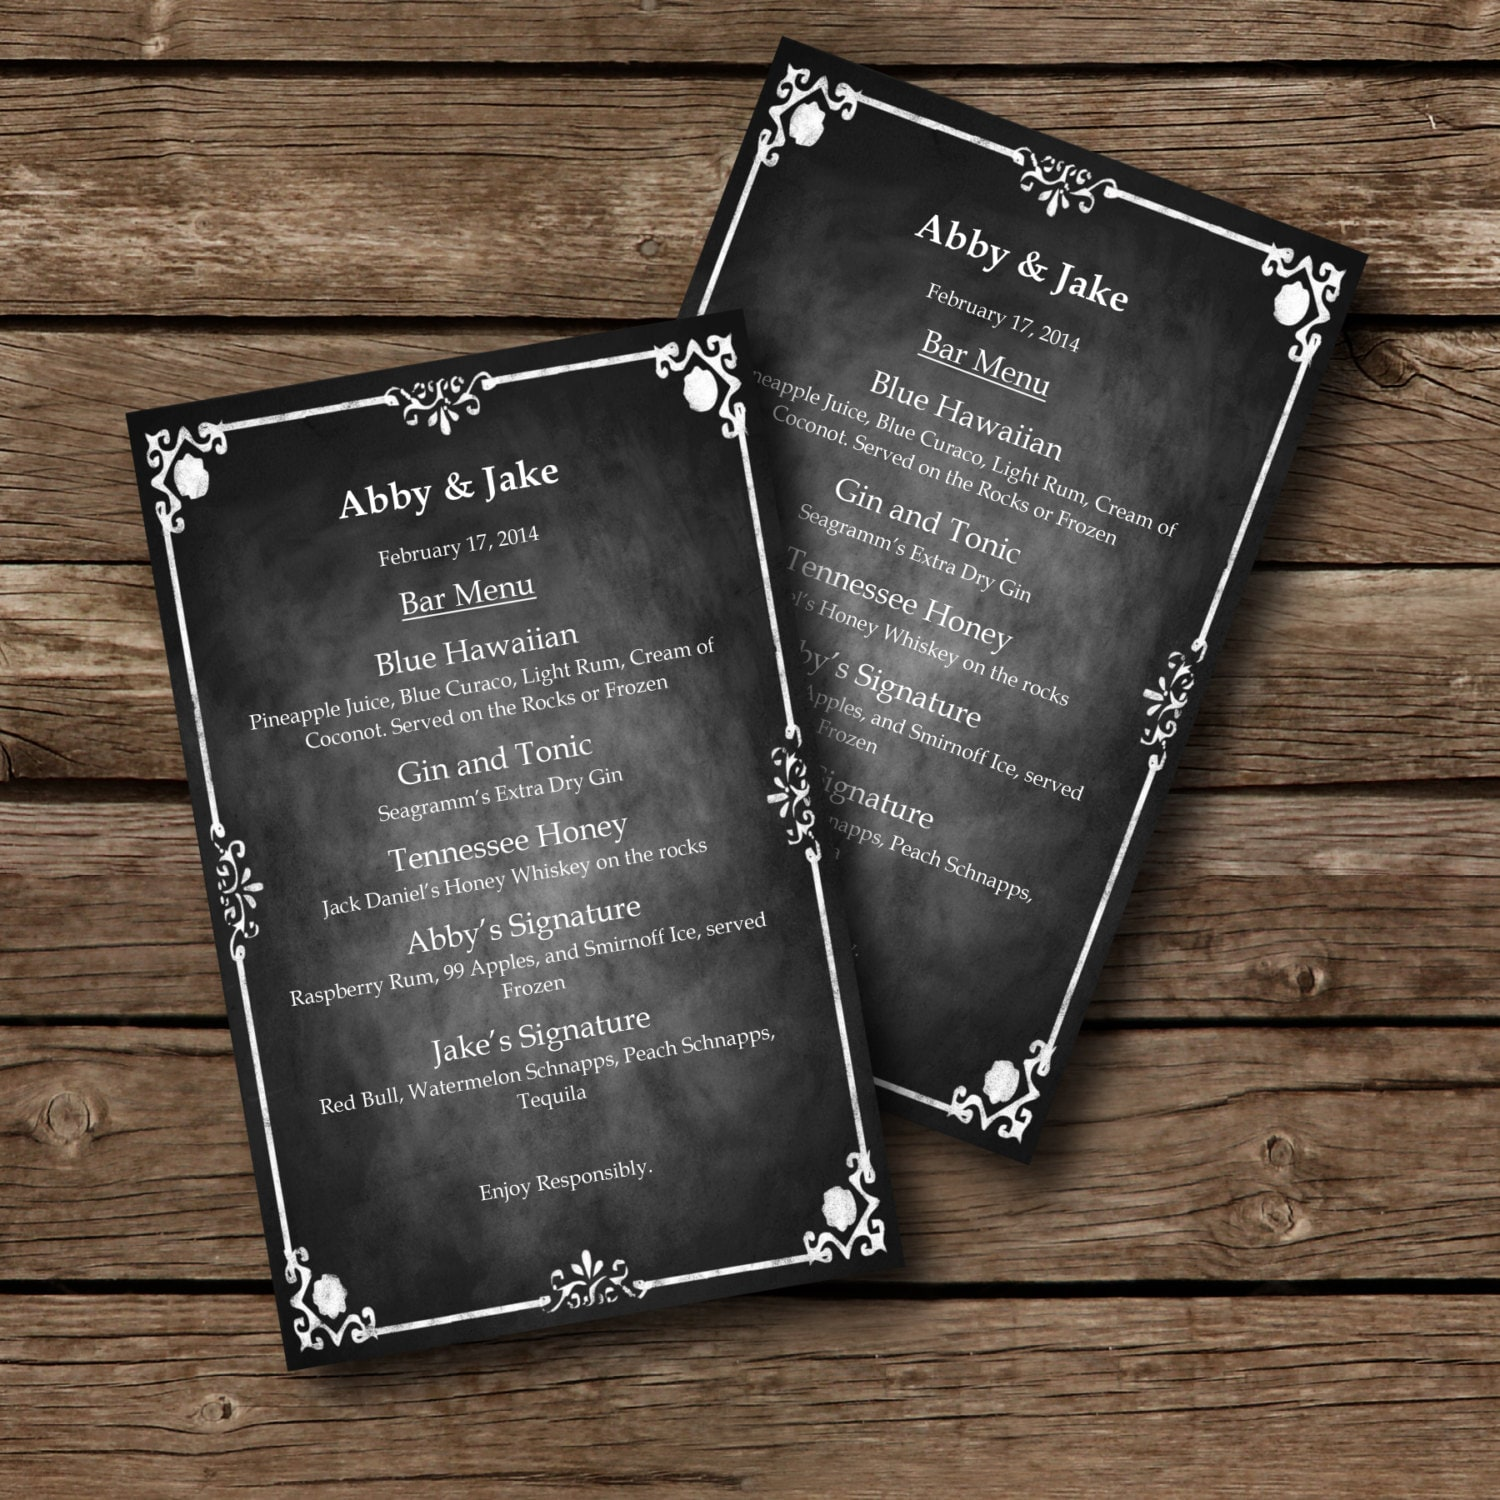 Editable MENU Template Chalkboard Style Word Document Il Fullxfull Editable Menu  Template Chalkboard Style Menu Template Word Free Menu Template Word Free  Free Menu Templates For Word